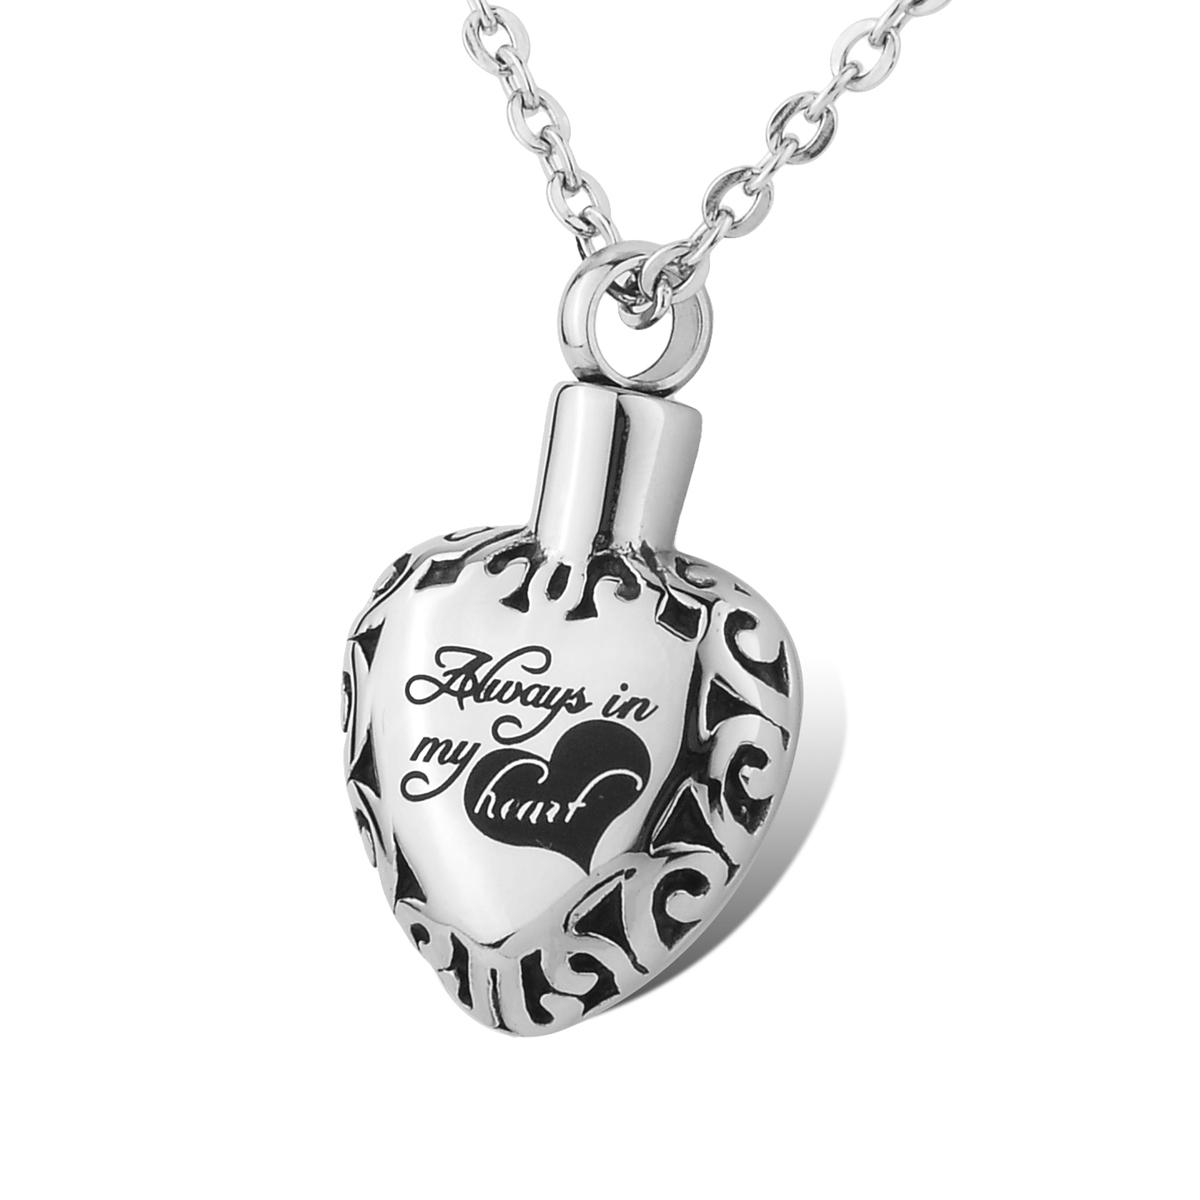 Lily Cremation Jewelry Toujours dans mon coeur urn pendentif Collier Locket Memo